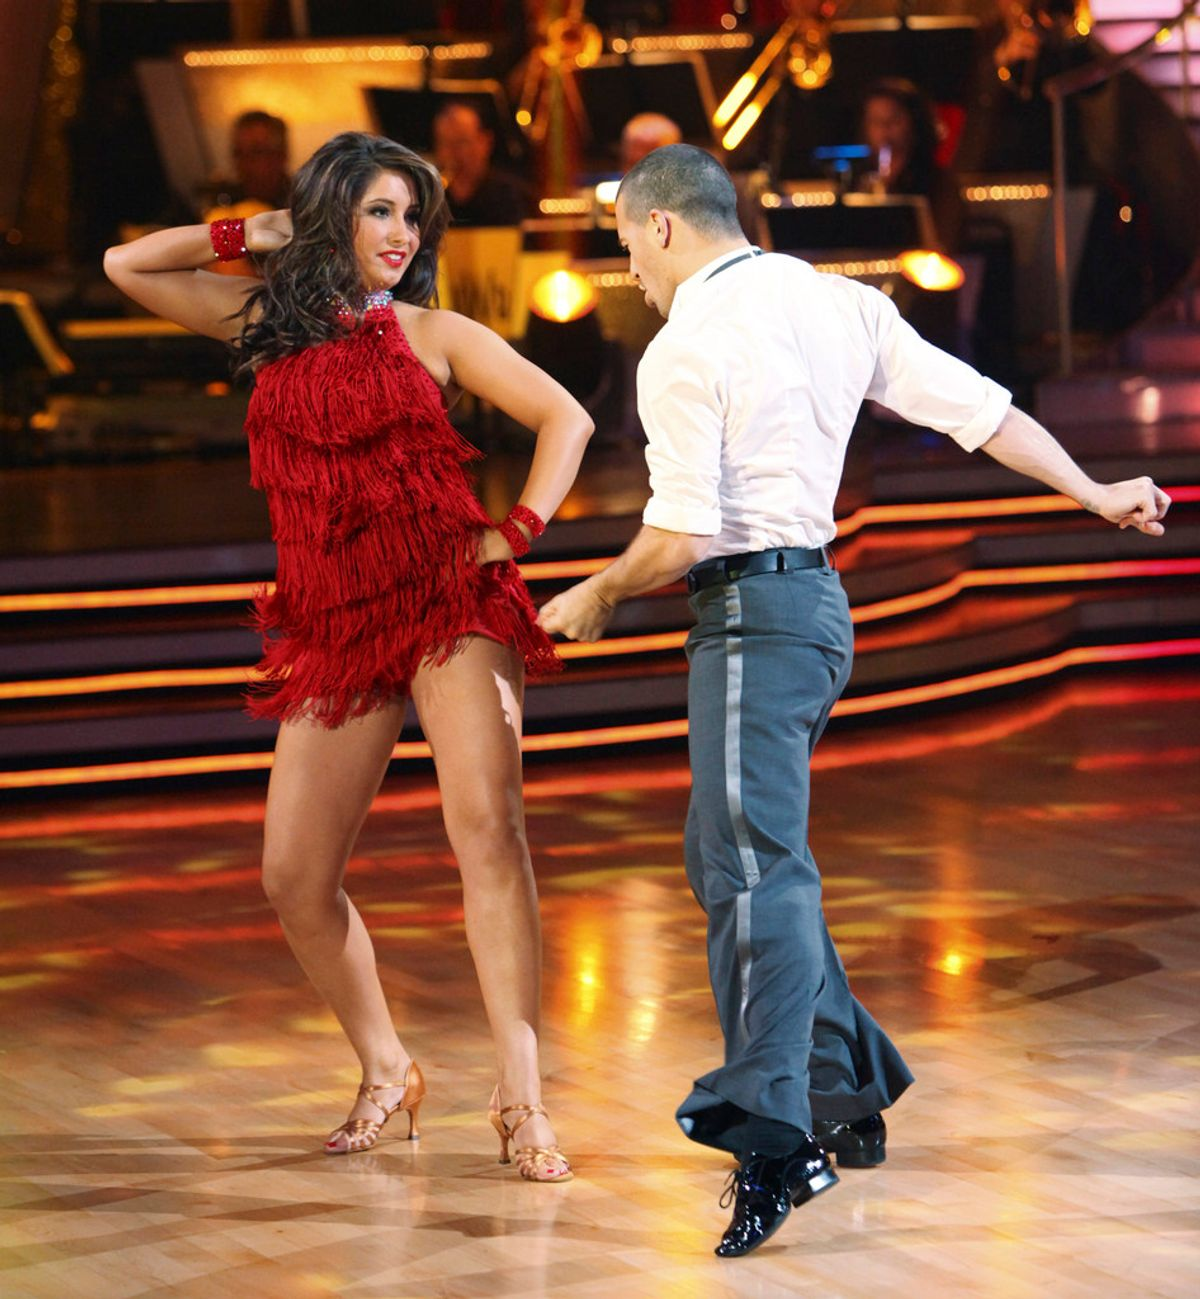 """DANCING WITH THE STARS - """"Episode 1101"""" - The Season 11 star-studded cast and their professional partners get ready to break in their dancing shoes on ABC's """"Dancing with the Stars"""" for the long awaited two-hour season premiere, MONDAY, SEPTEMBER 20 (8:00-10:01 p.m., ET) on the ABC Television Network. (ABC/ADAM LARKEY) BRISTOL PALIN, MARK BALLAS (Adam Larkey)"""